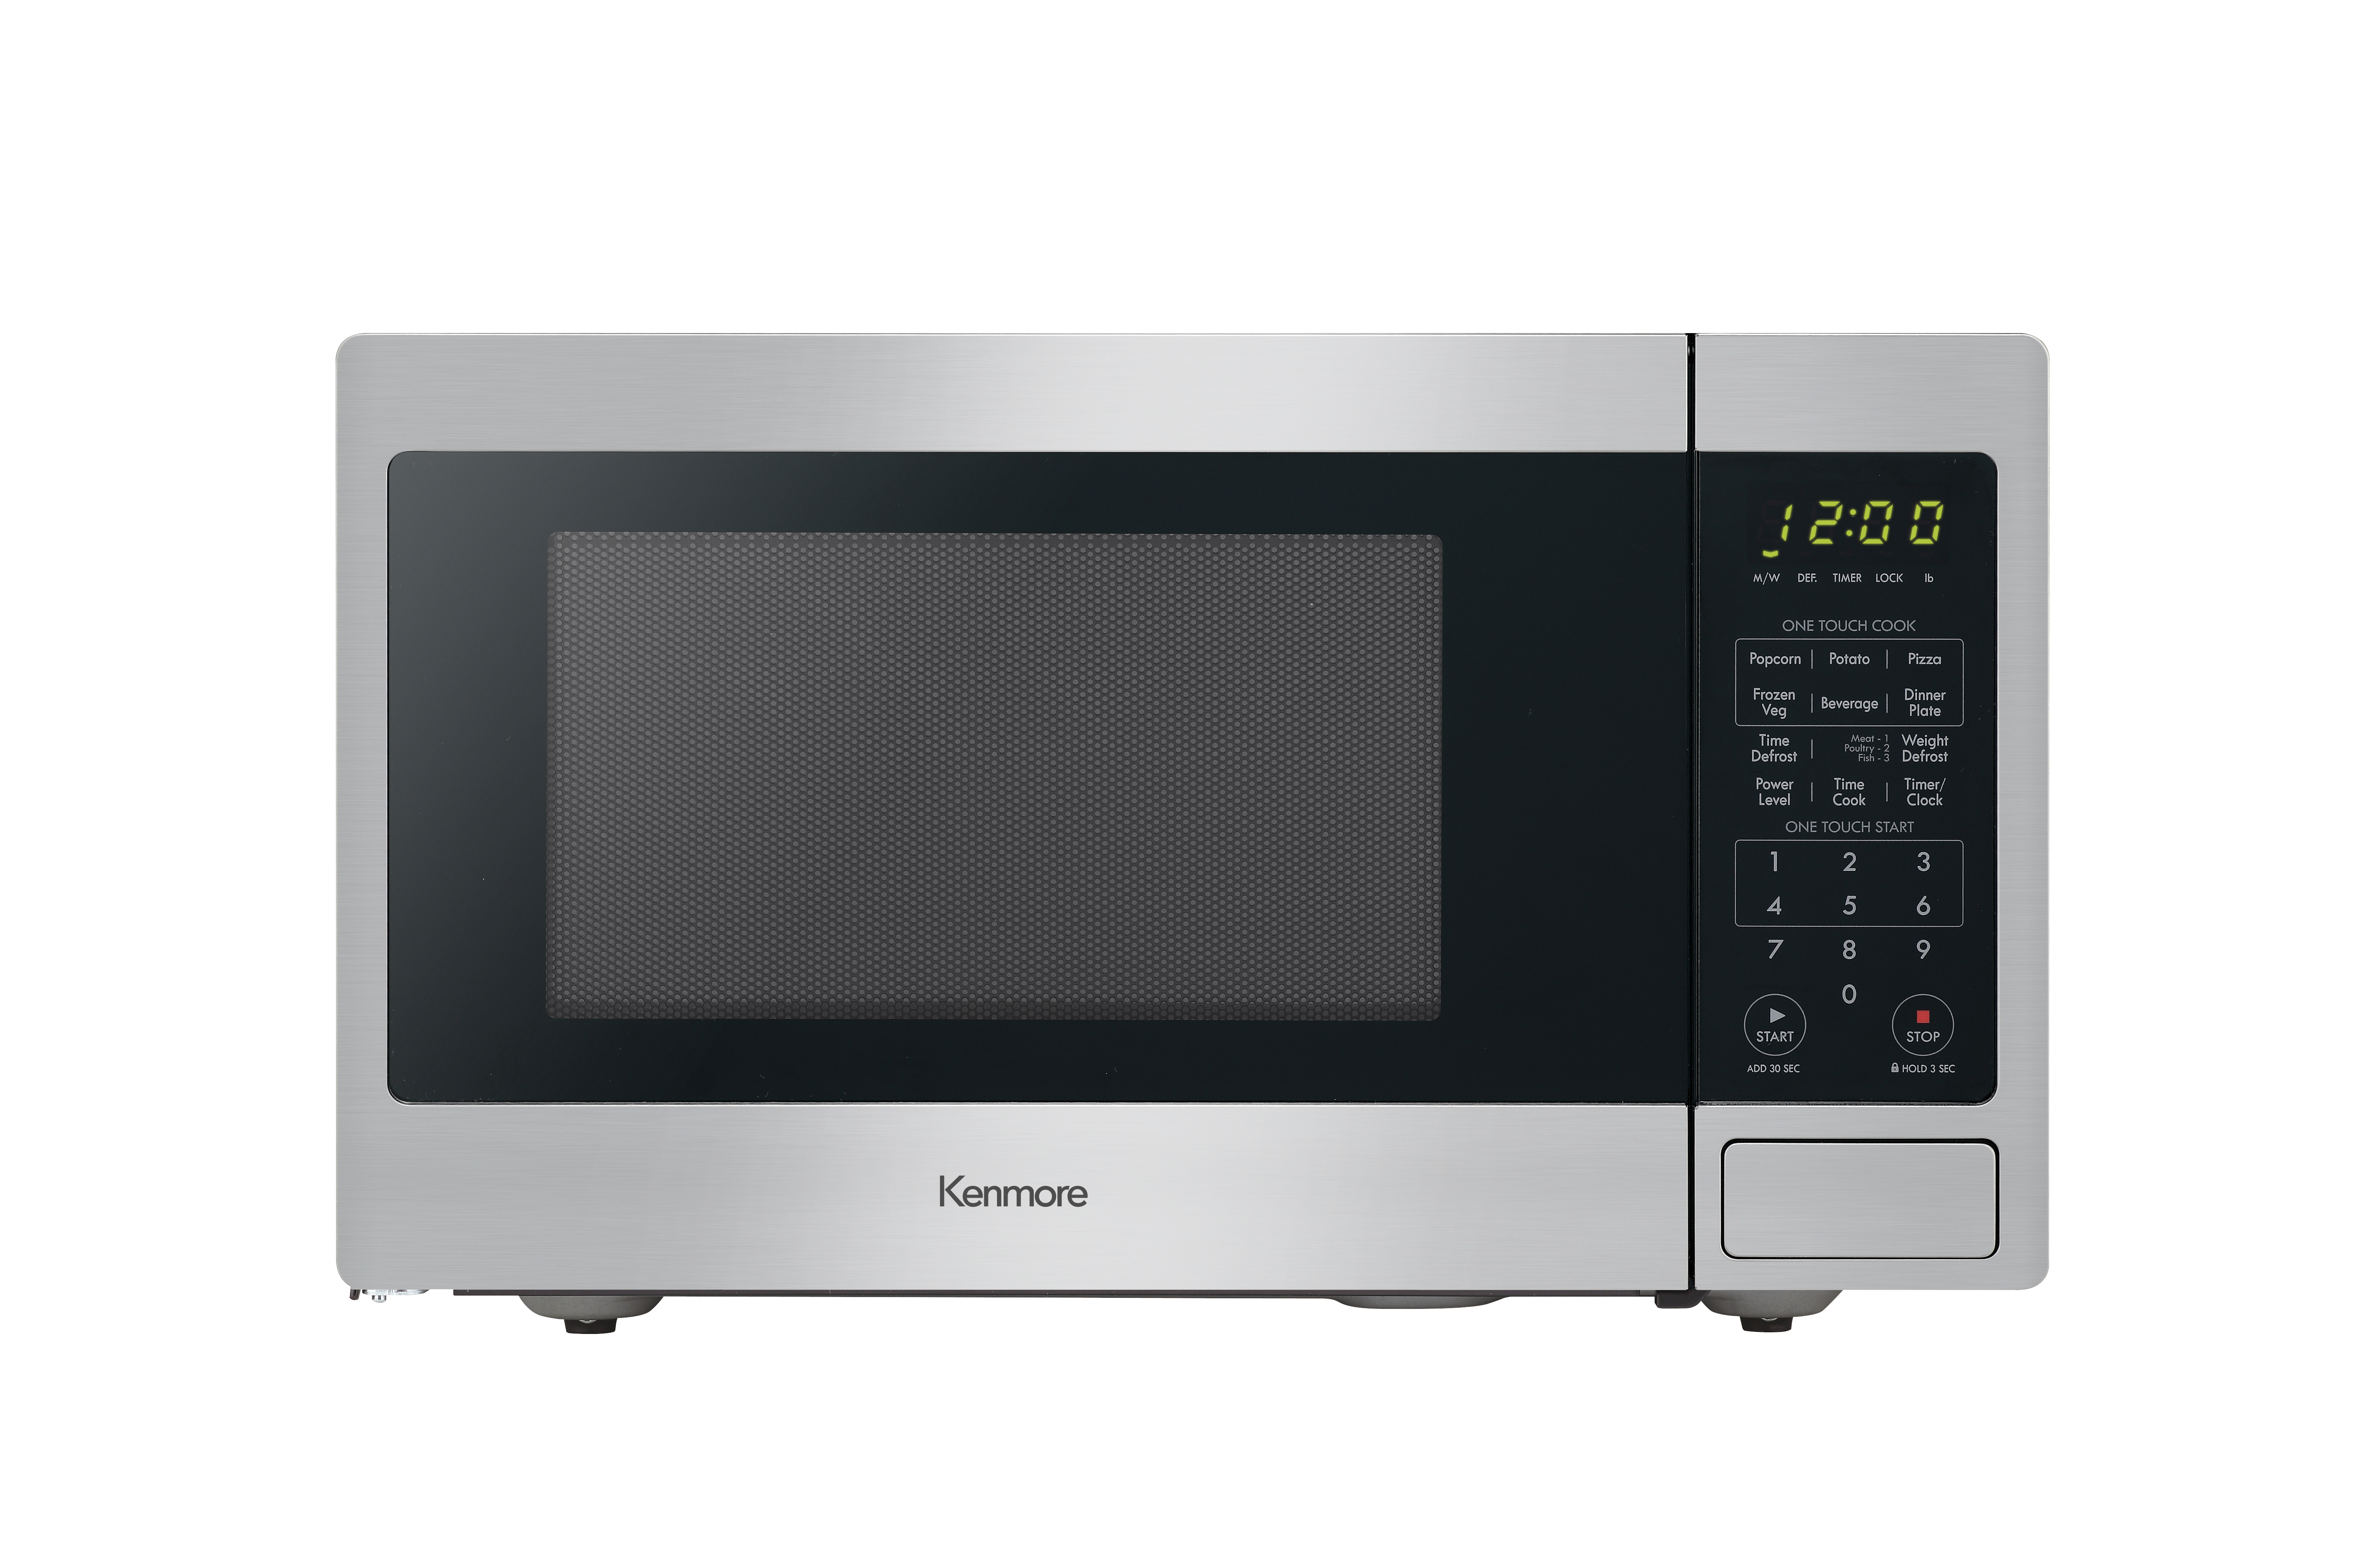 countertop other microwaves at kmart